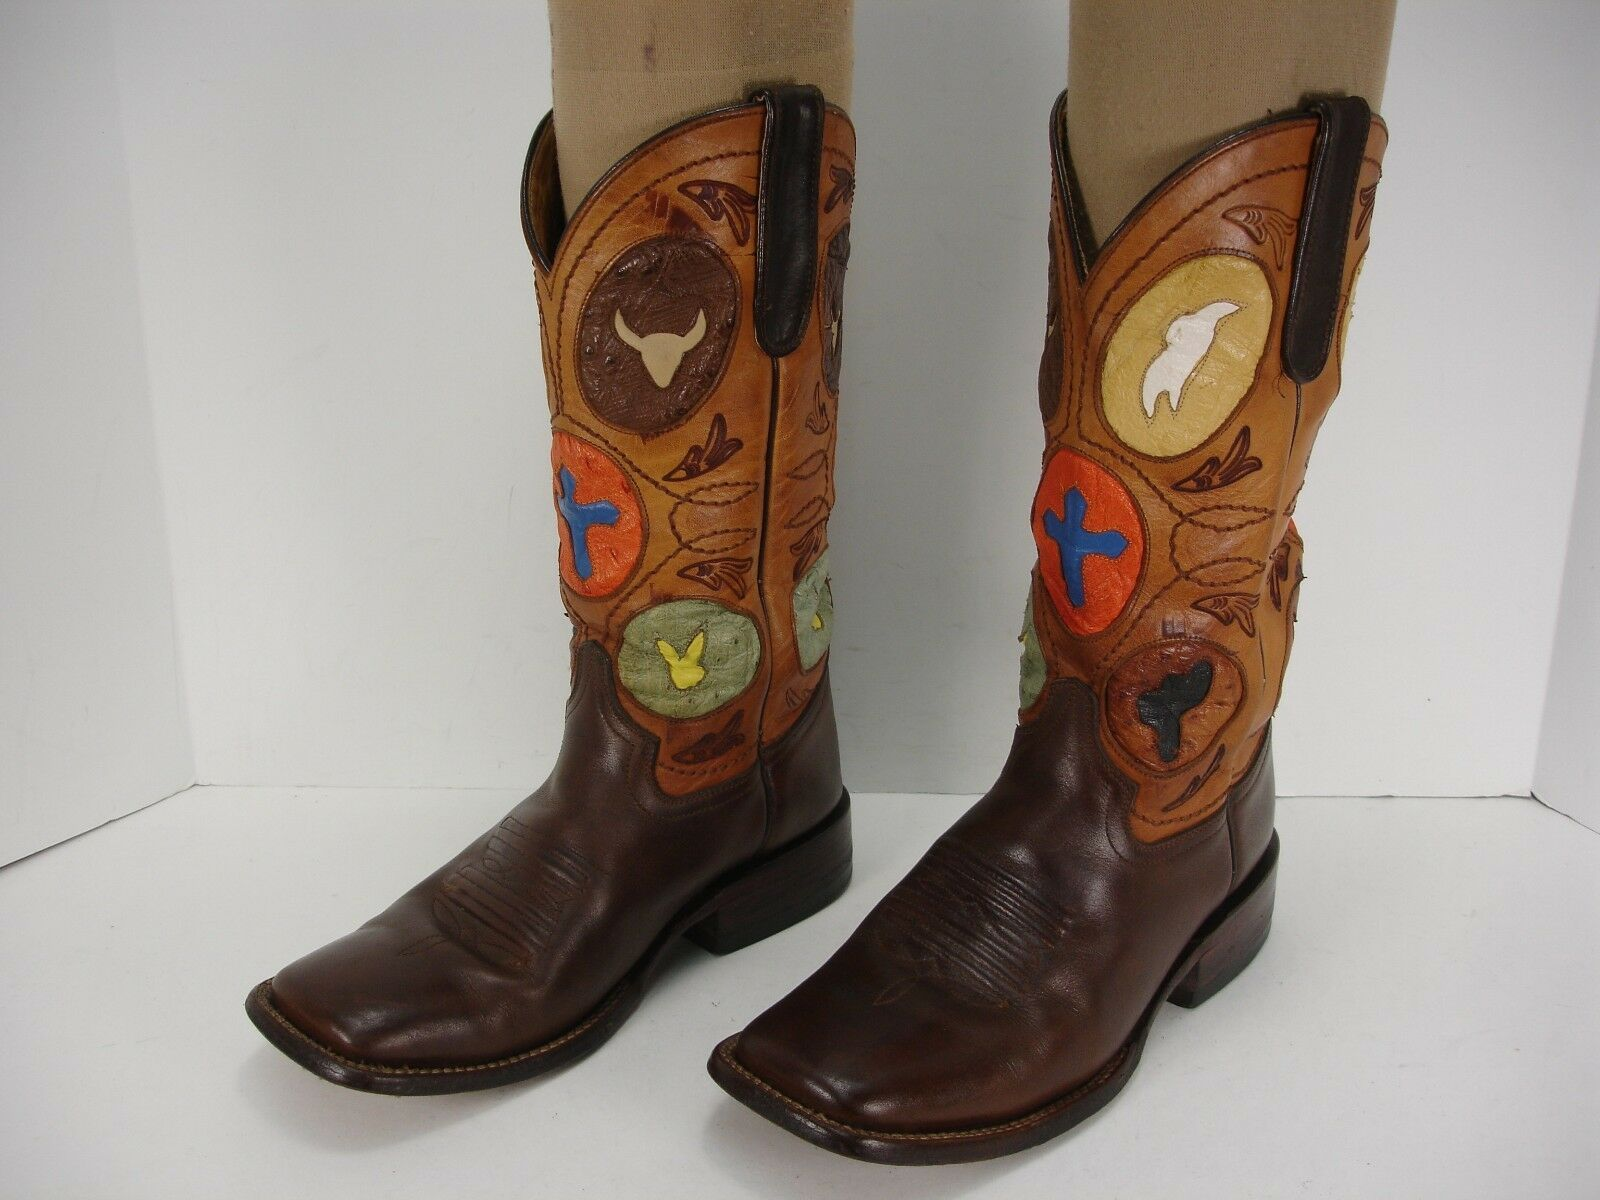 FERRINI BROWN LEATHER OSTRICH INLAY WOMEN'S TRIM COWBOY WESTERN BOOTS WOMEN'S INLAY 7.5 B fcbce3